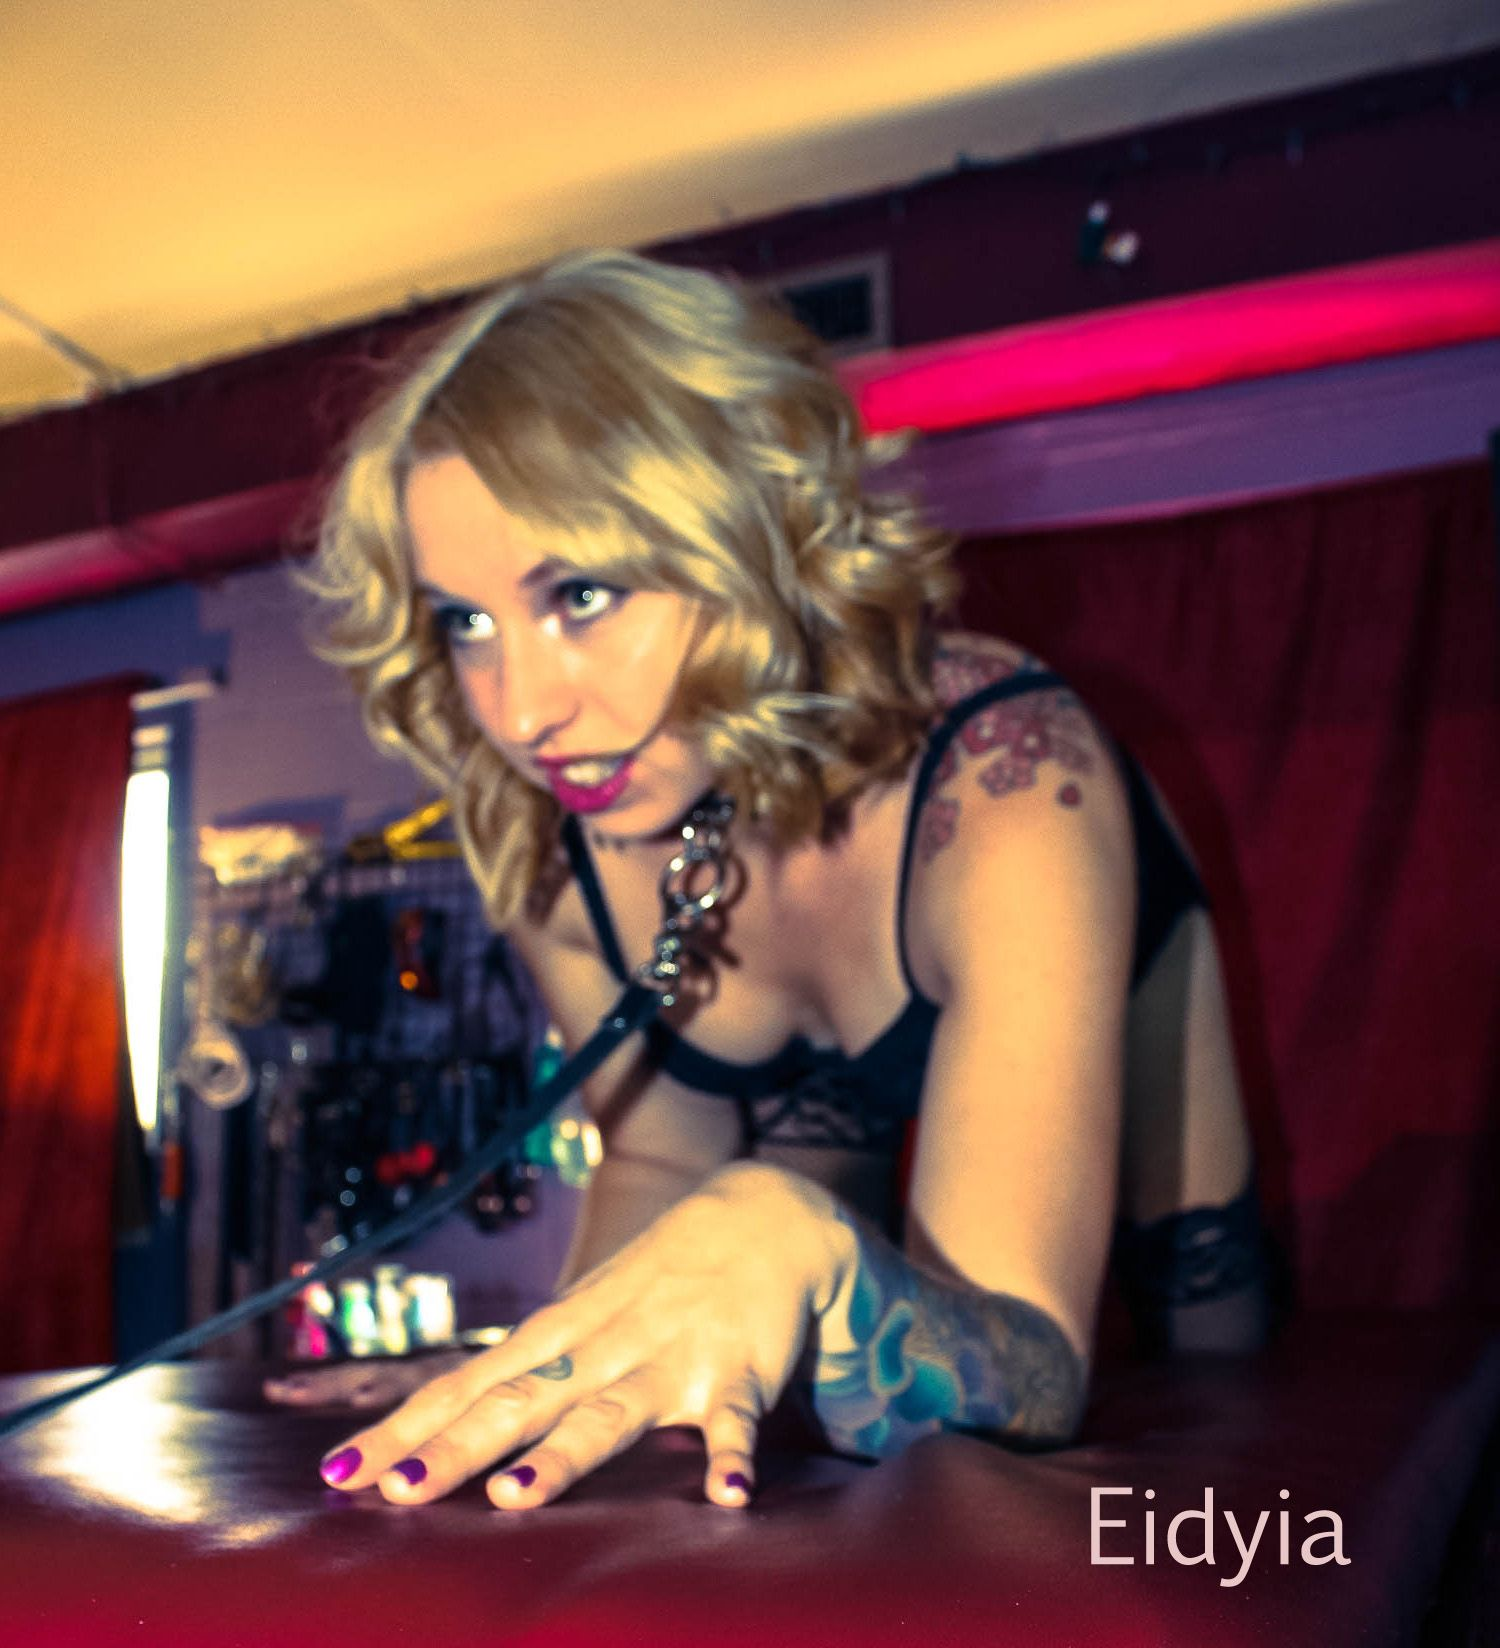 Eidyia Stand and Model Photo Shoot Denver Colorado 11-16-14 | Models photoshoot, Model photos, Photoshoot